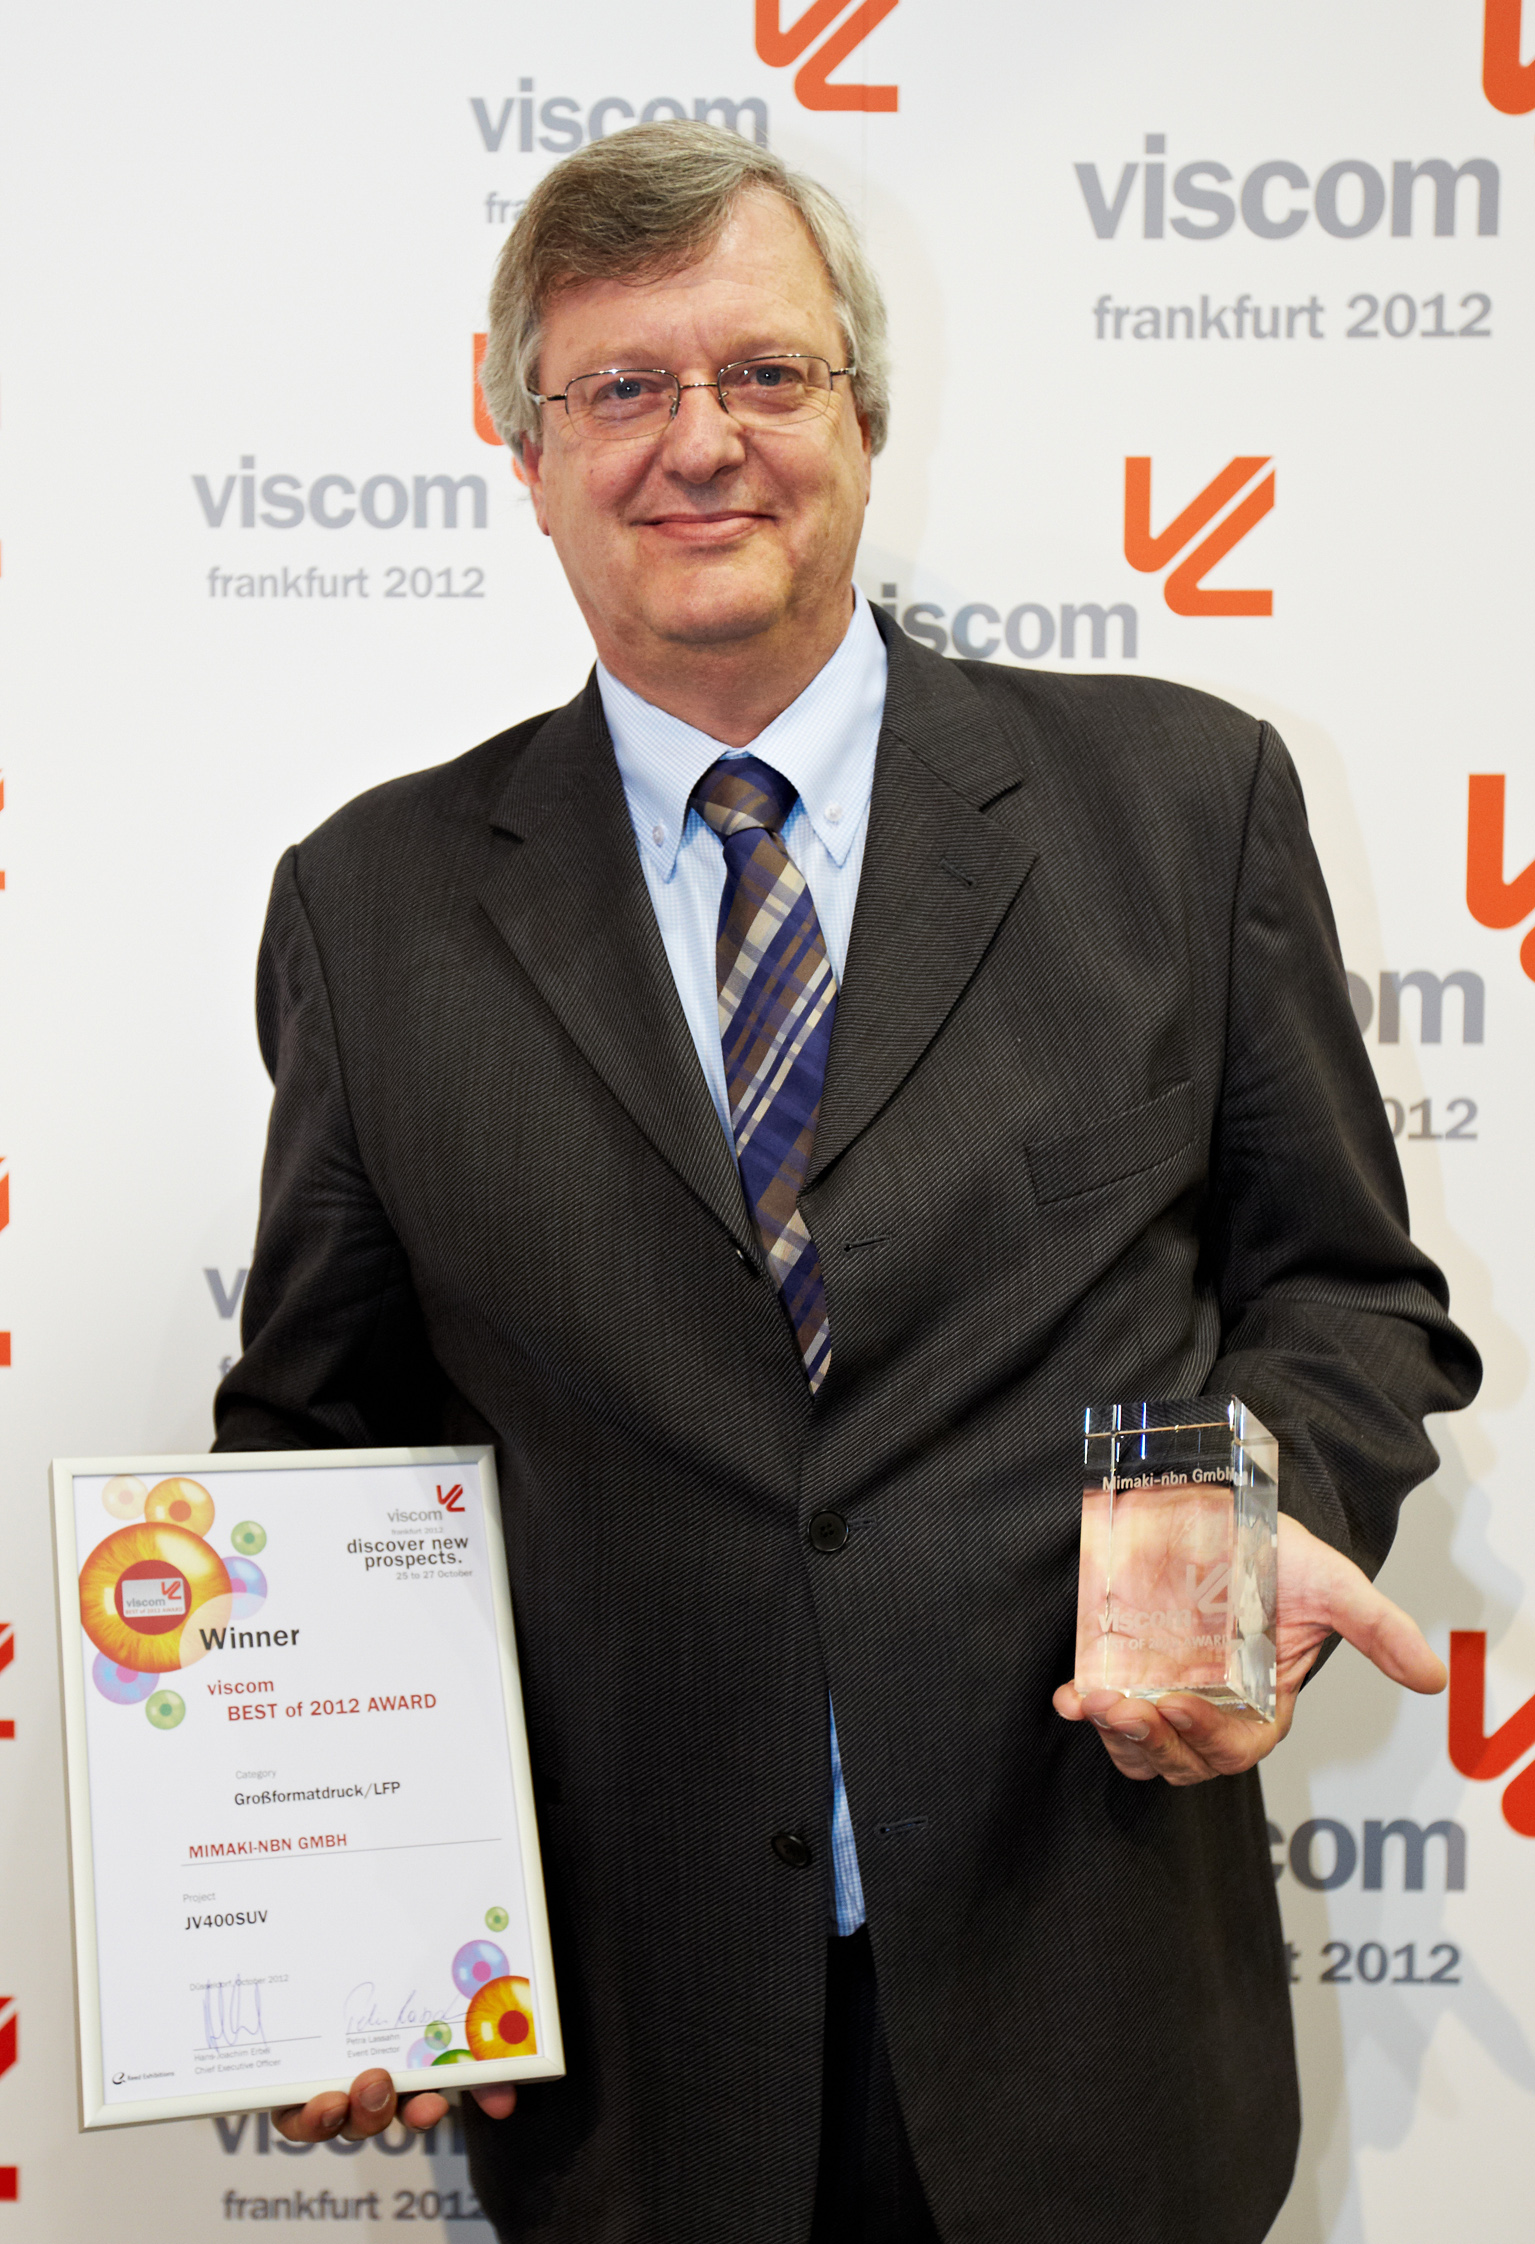 viscom 2012 award mimaki